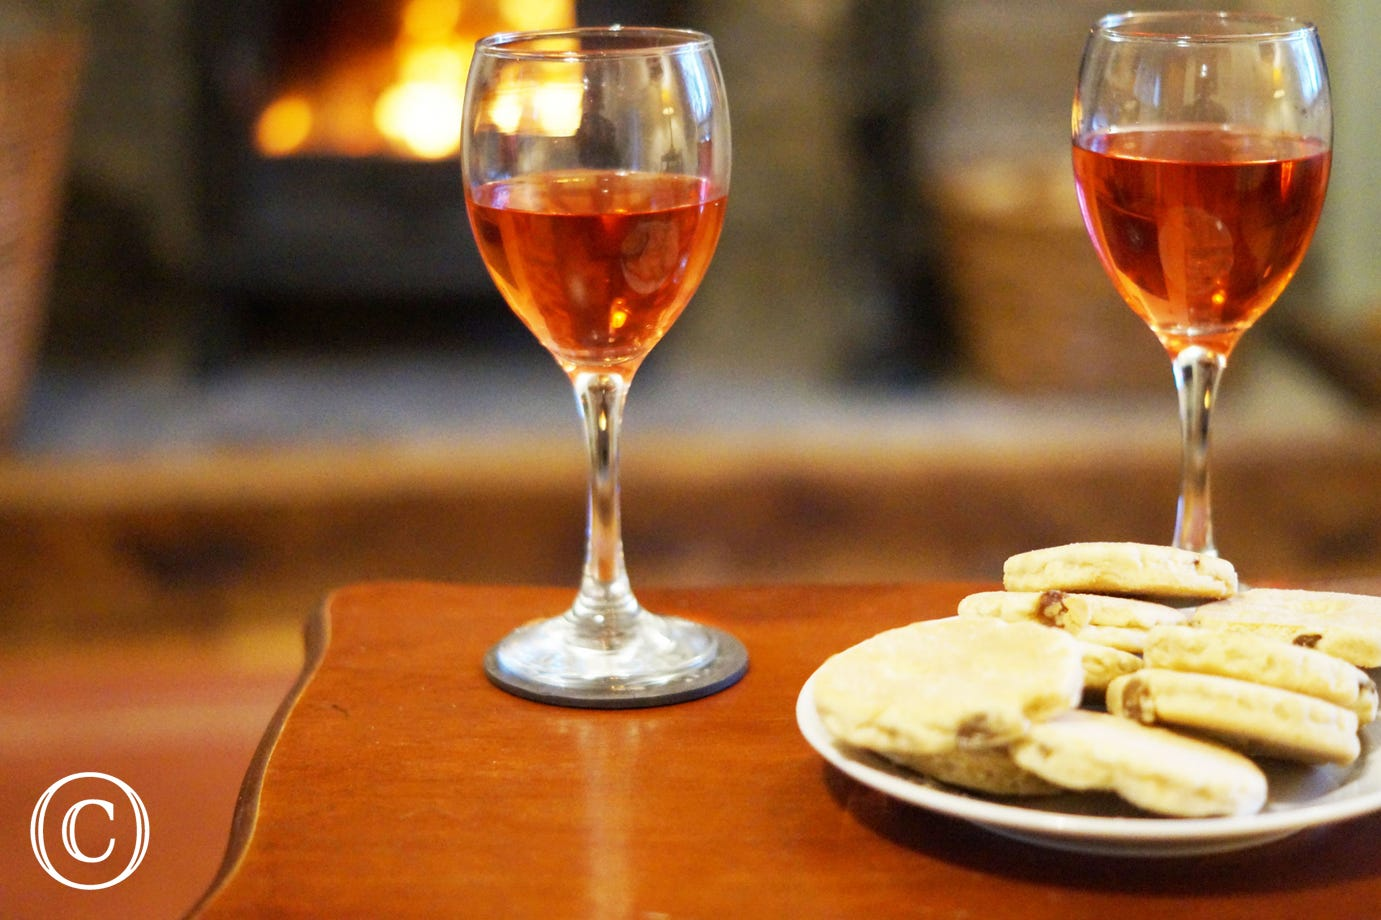 welsh cakes and wine in front of the fire